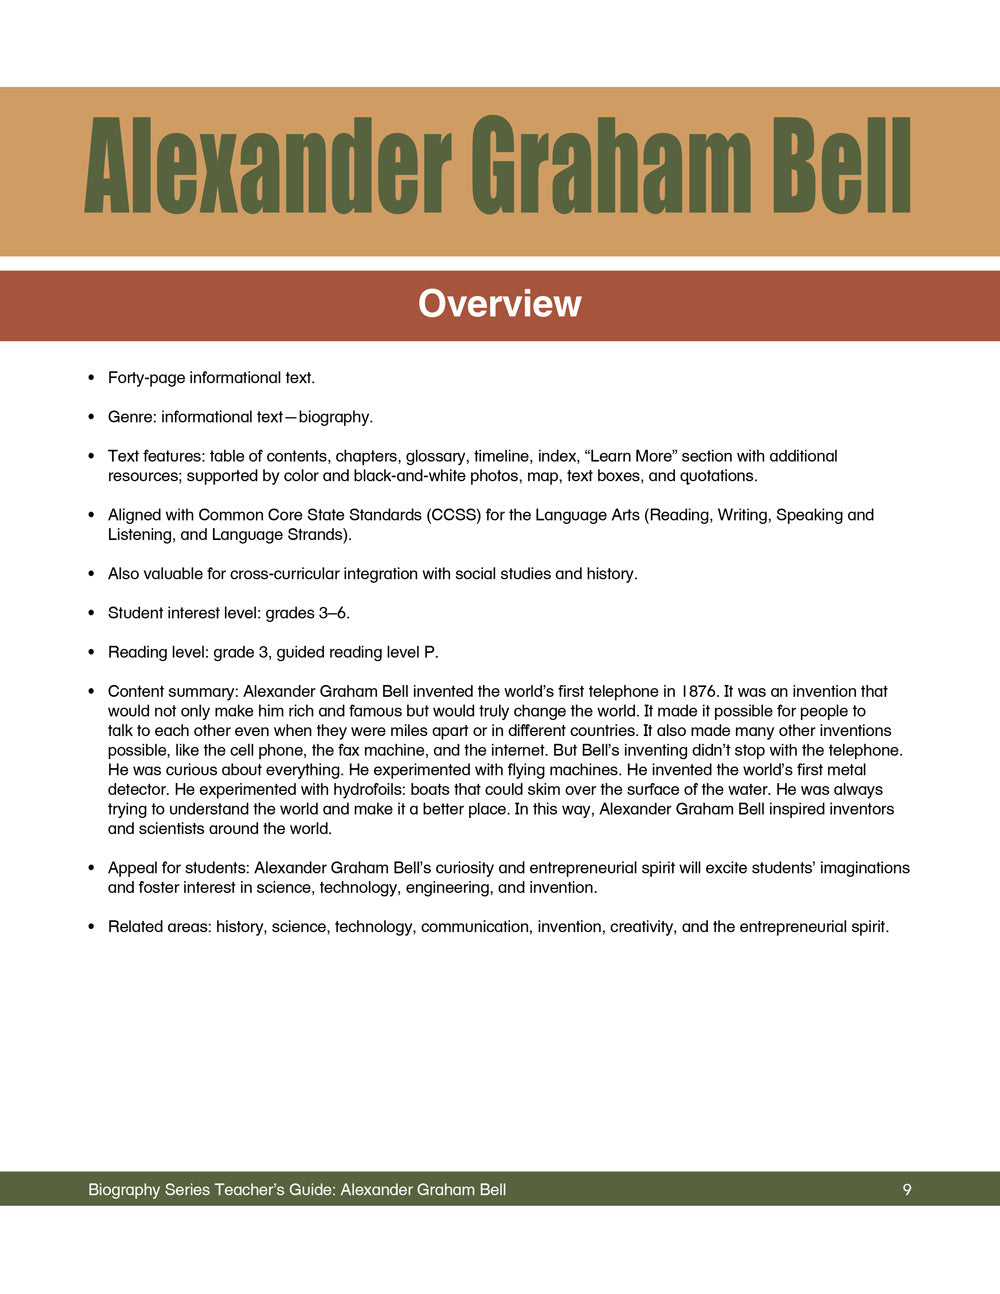 Alexander Graham Bell Teacher's Guide